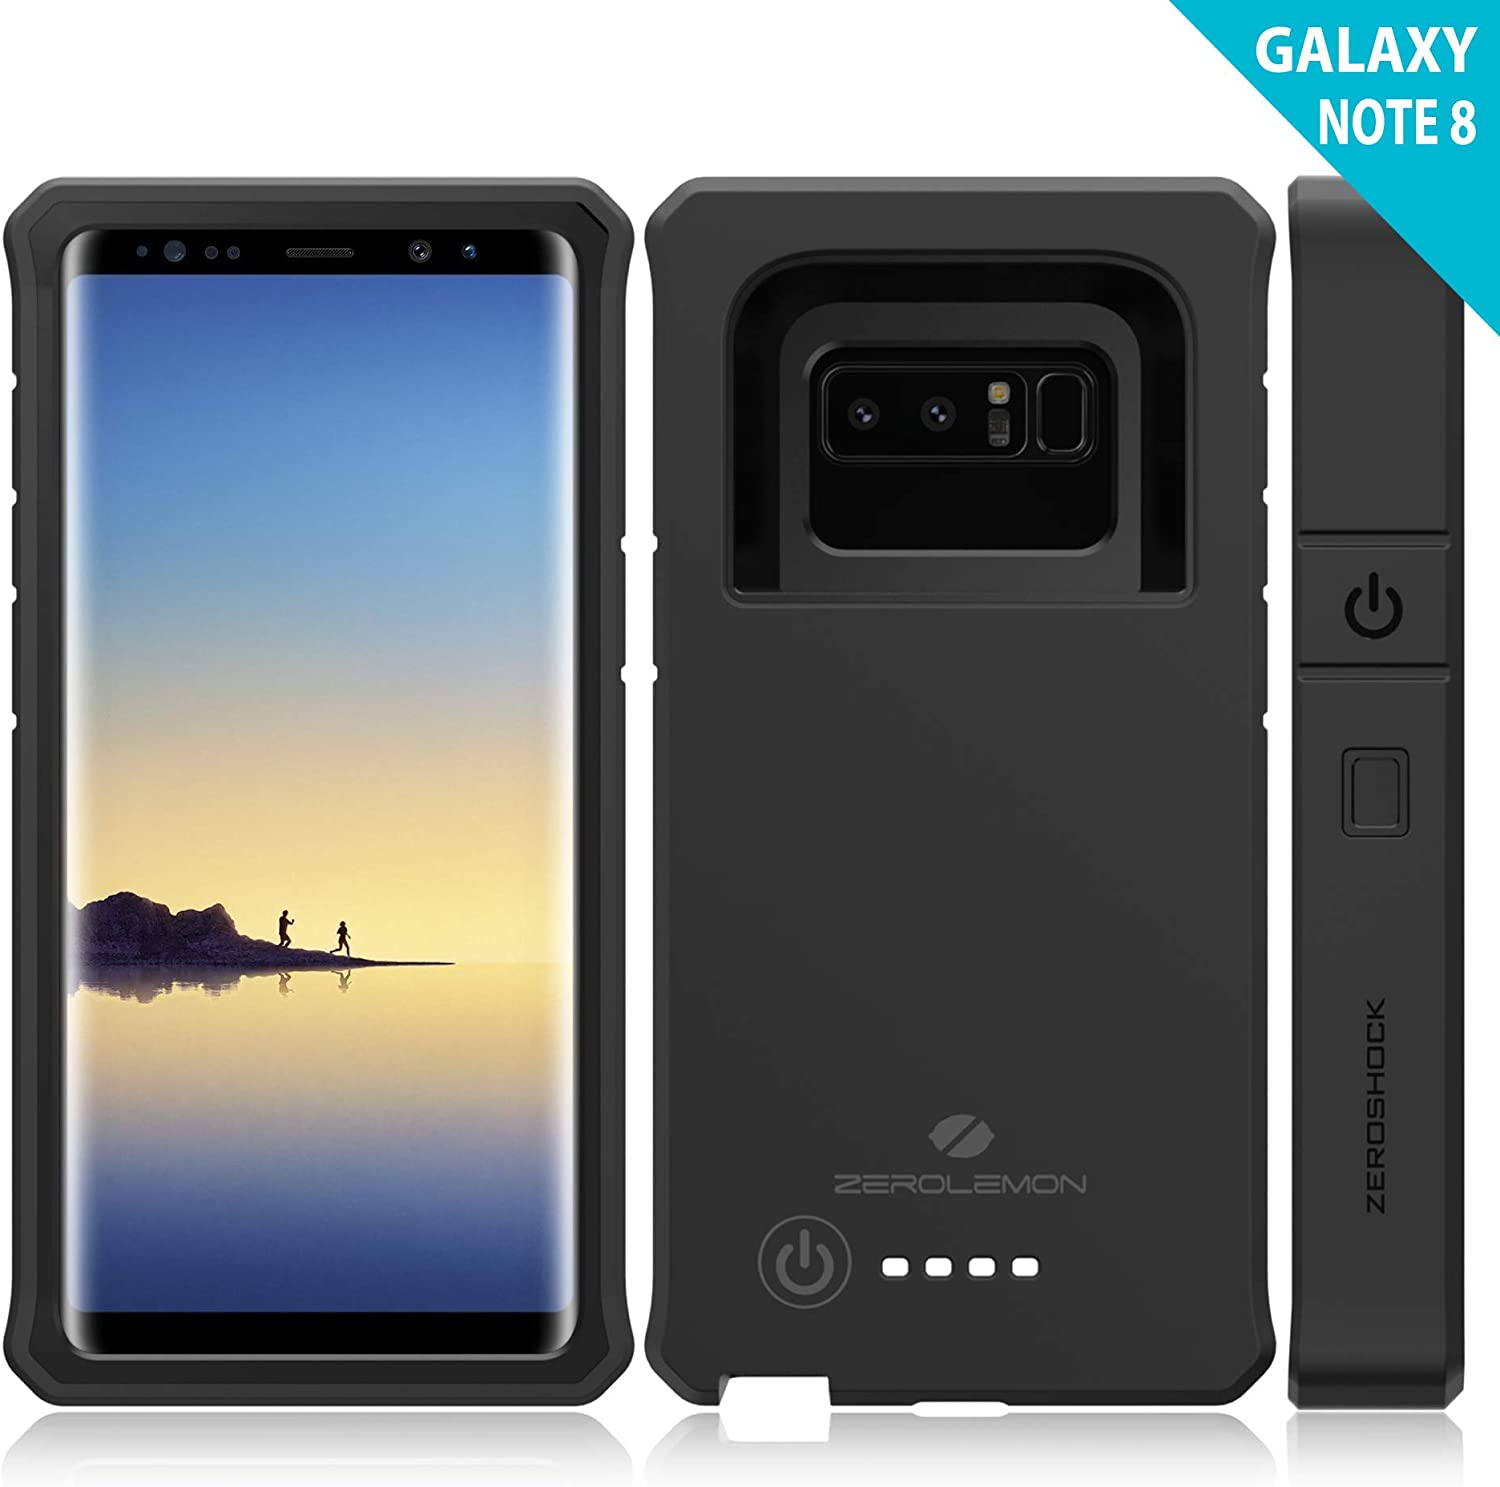 ZEROLEMON Galaxy Note 8 Battery Charger